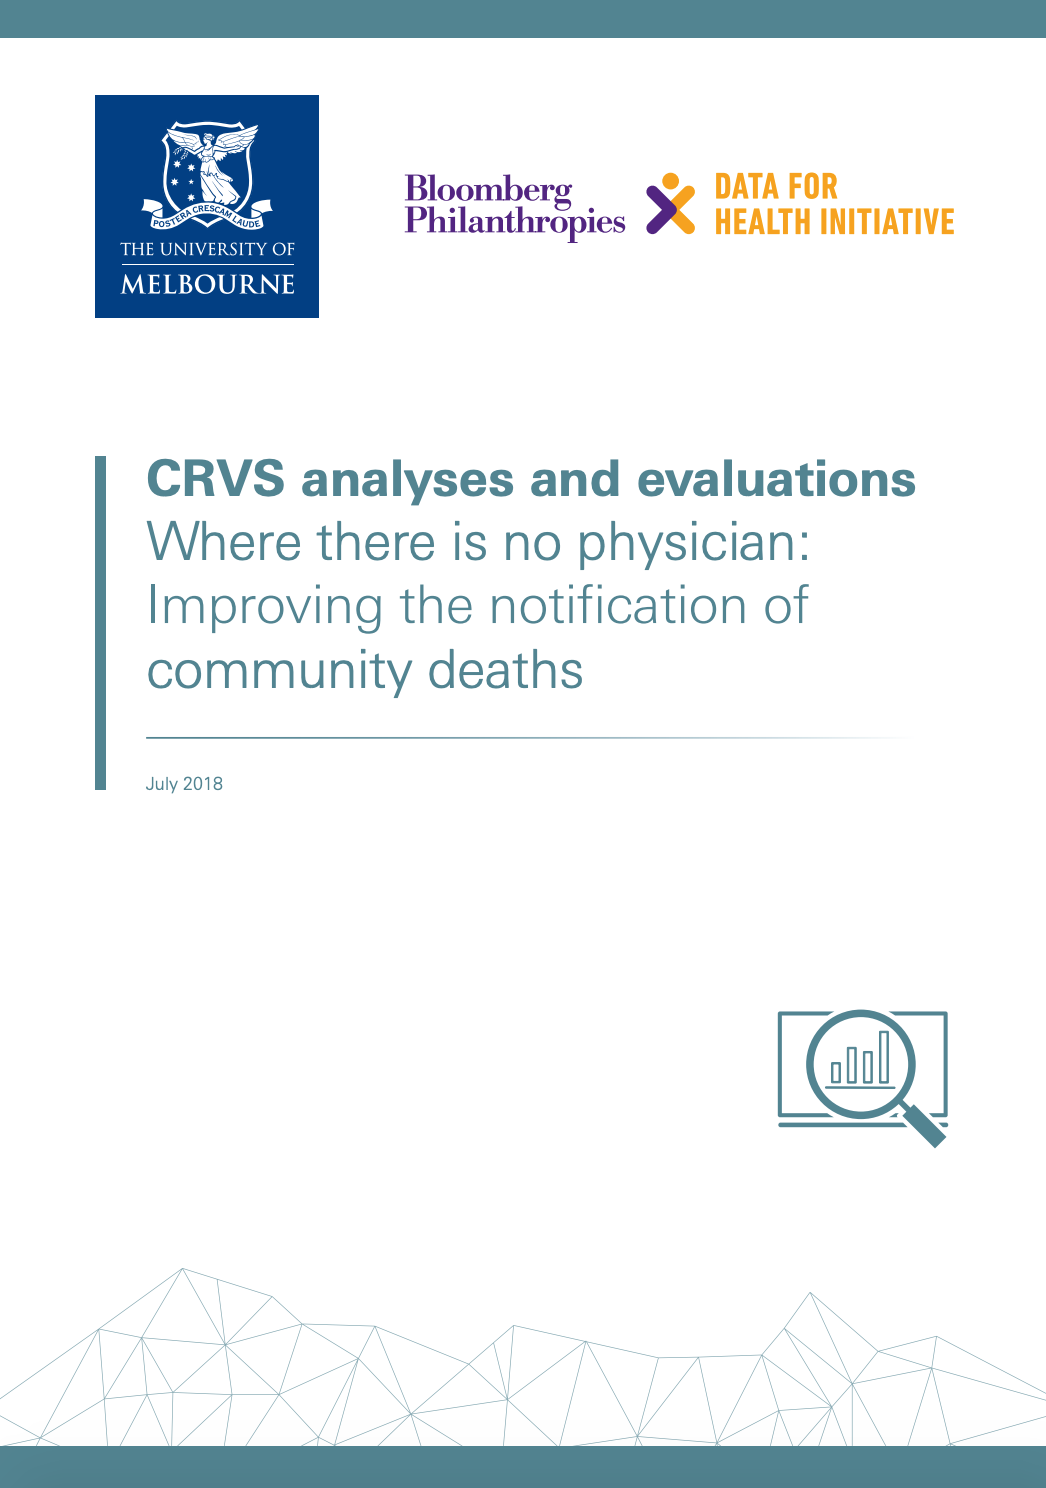 CRVS analyses and evaluations Where there is no physician: Improving the notification of community deaths thumbnail